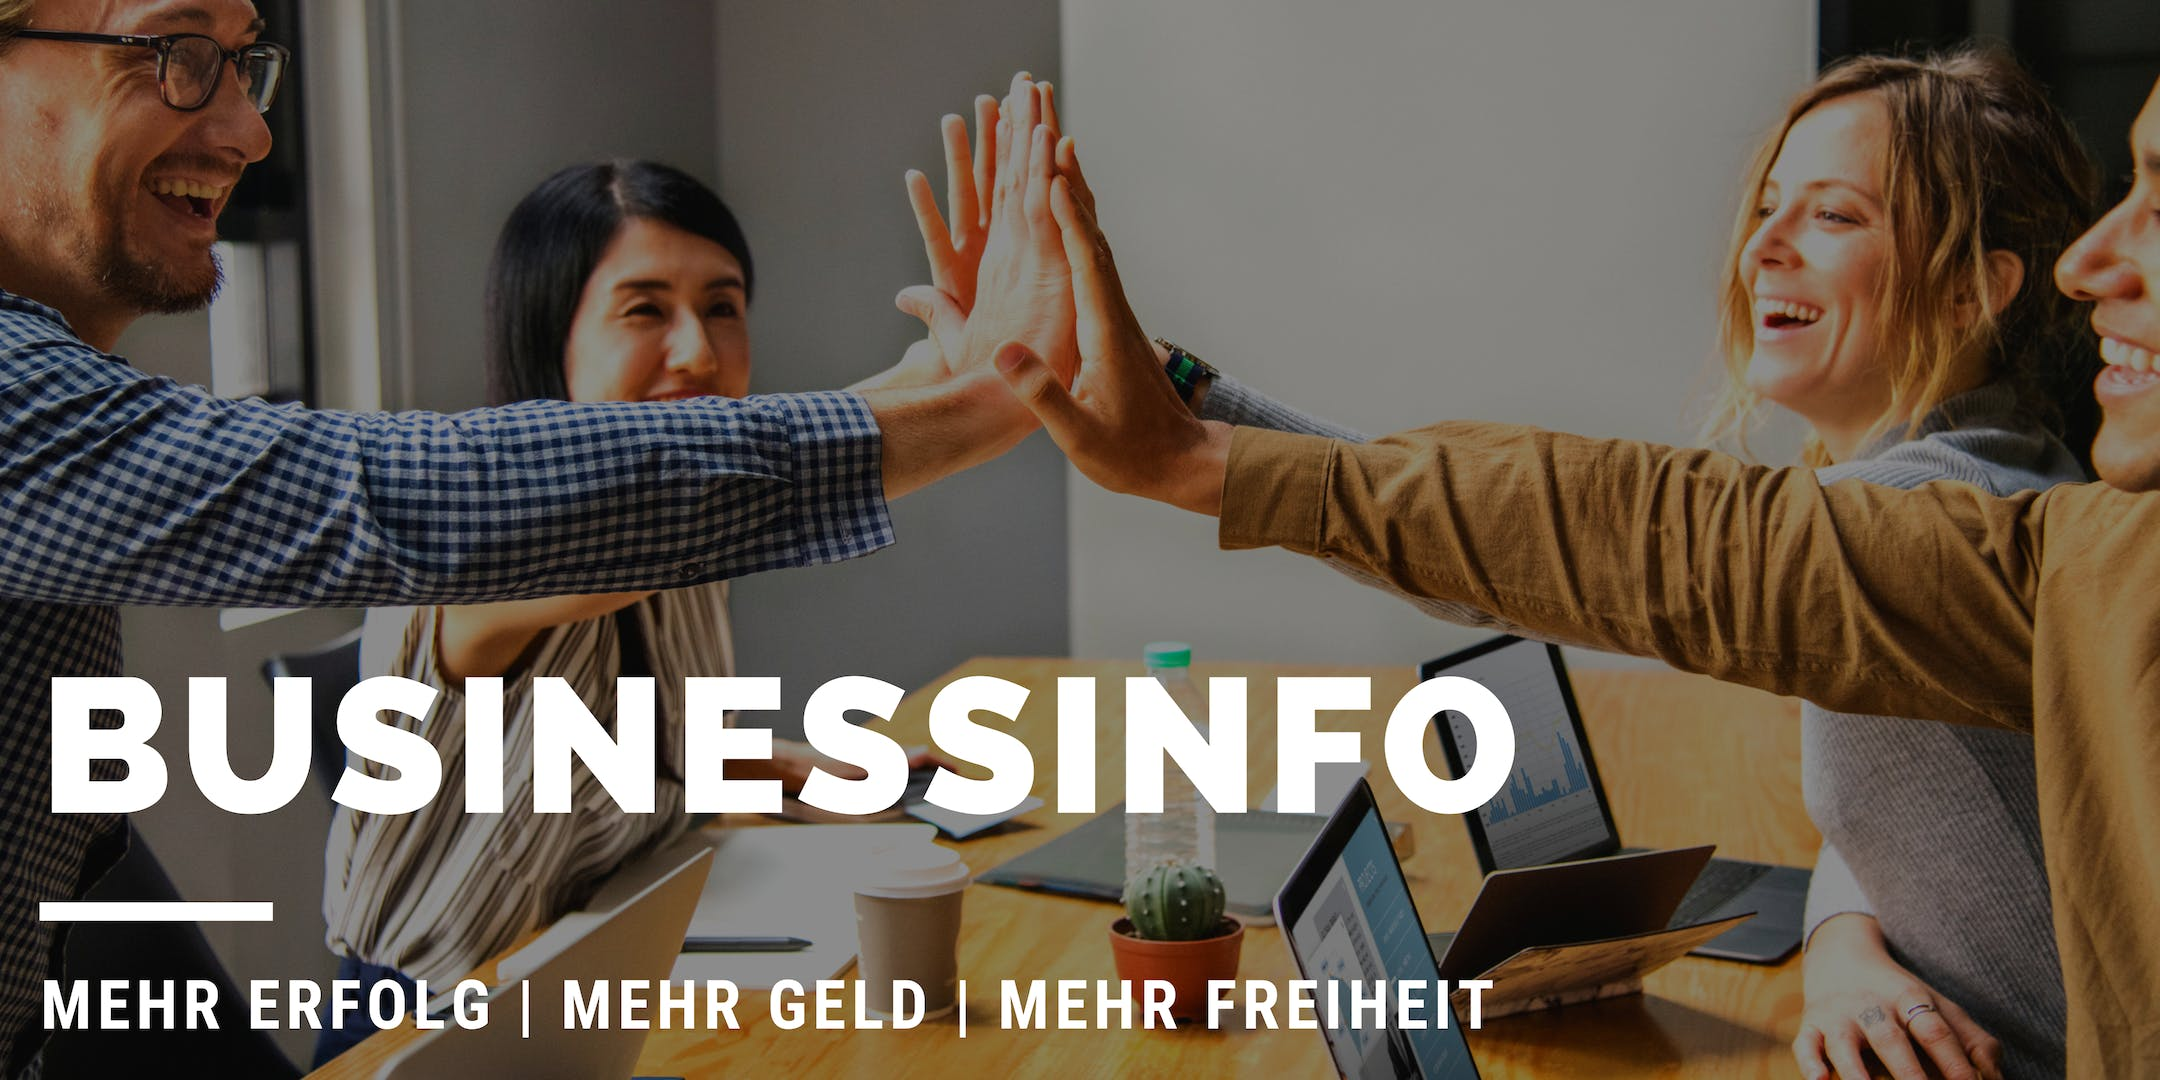 Businessinfo - Dein perfektes Business!